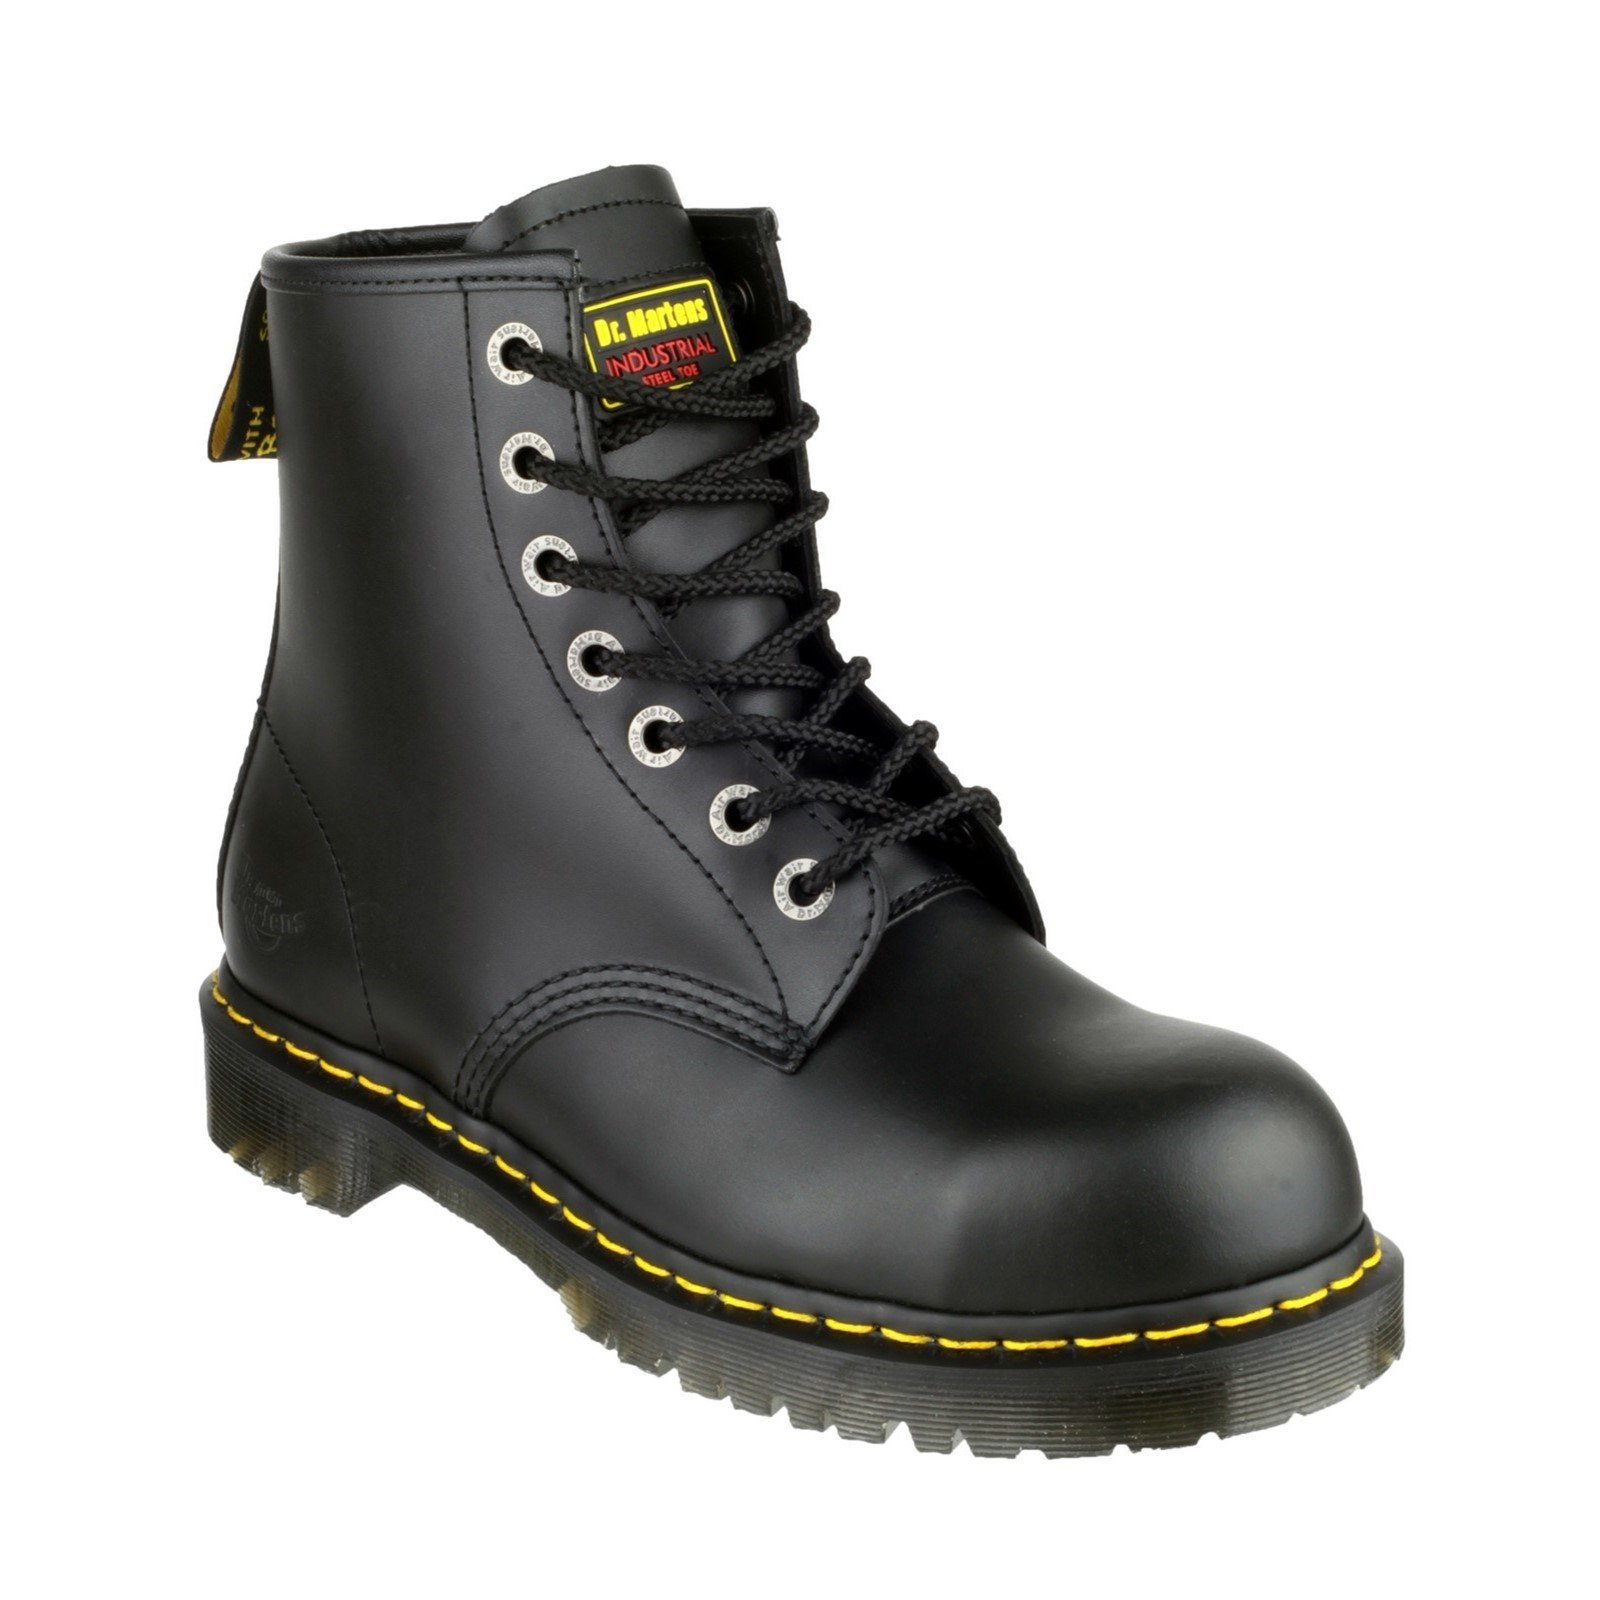 Dr Martens Unisex Icon Lace up Safety Boot Black 19498 - Black 15